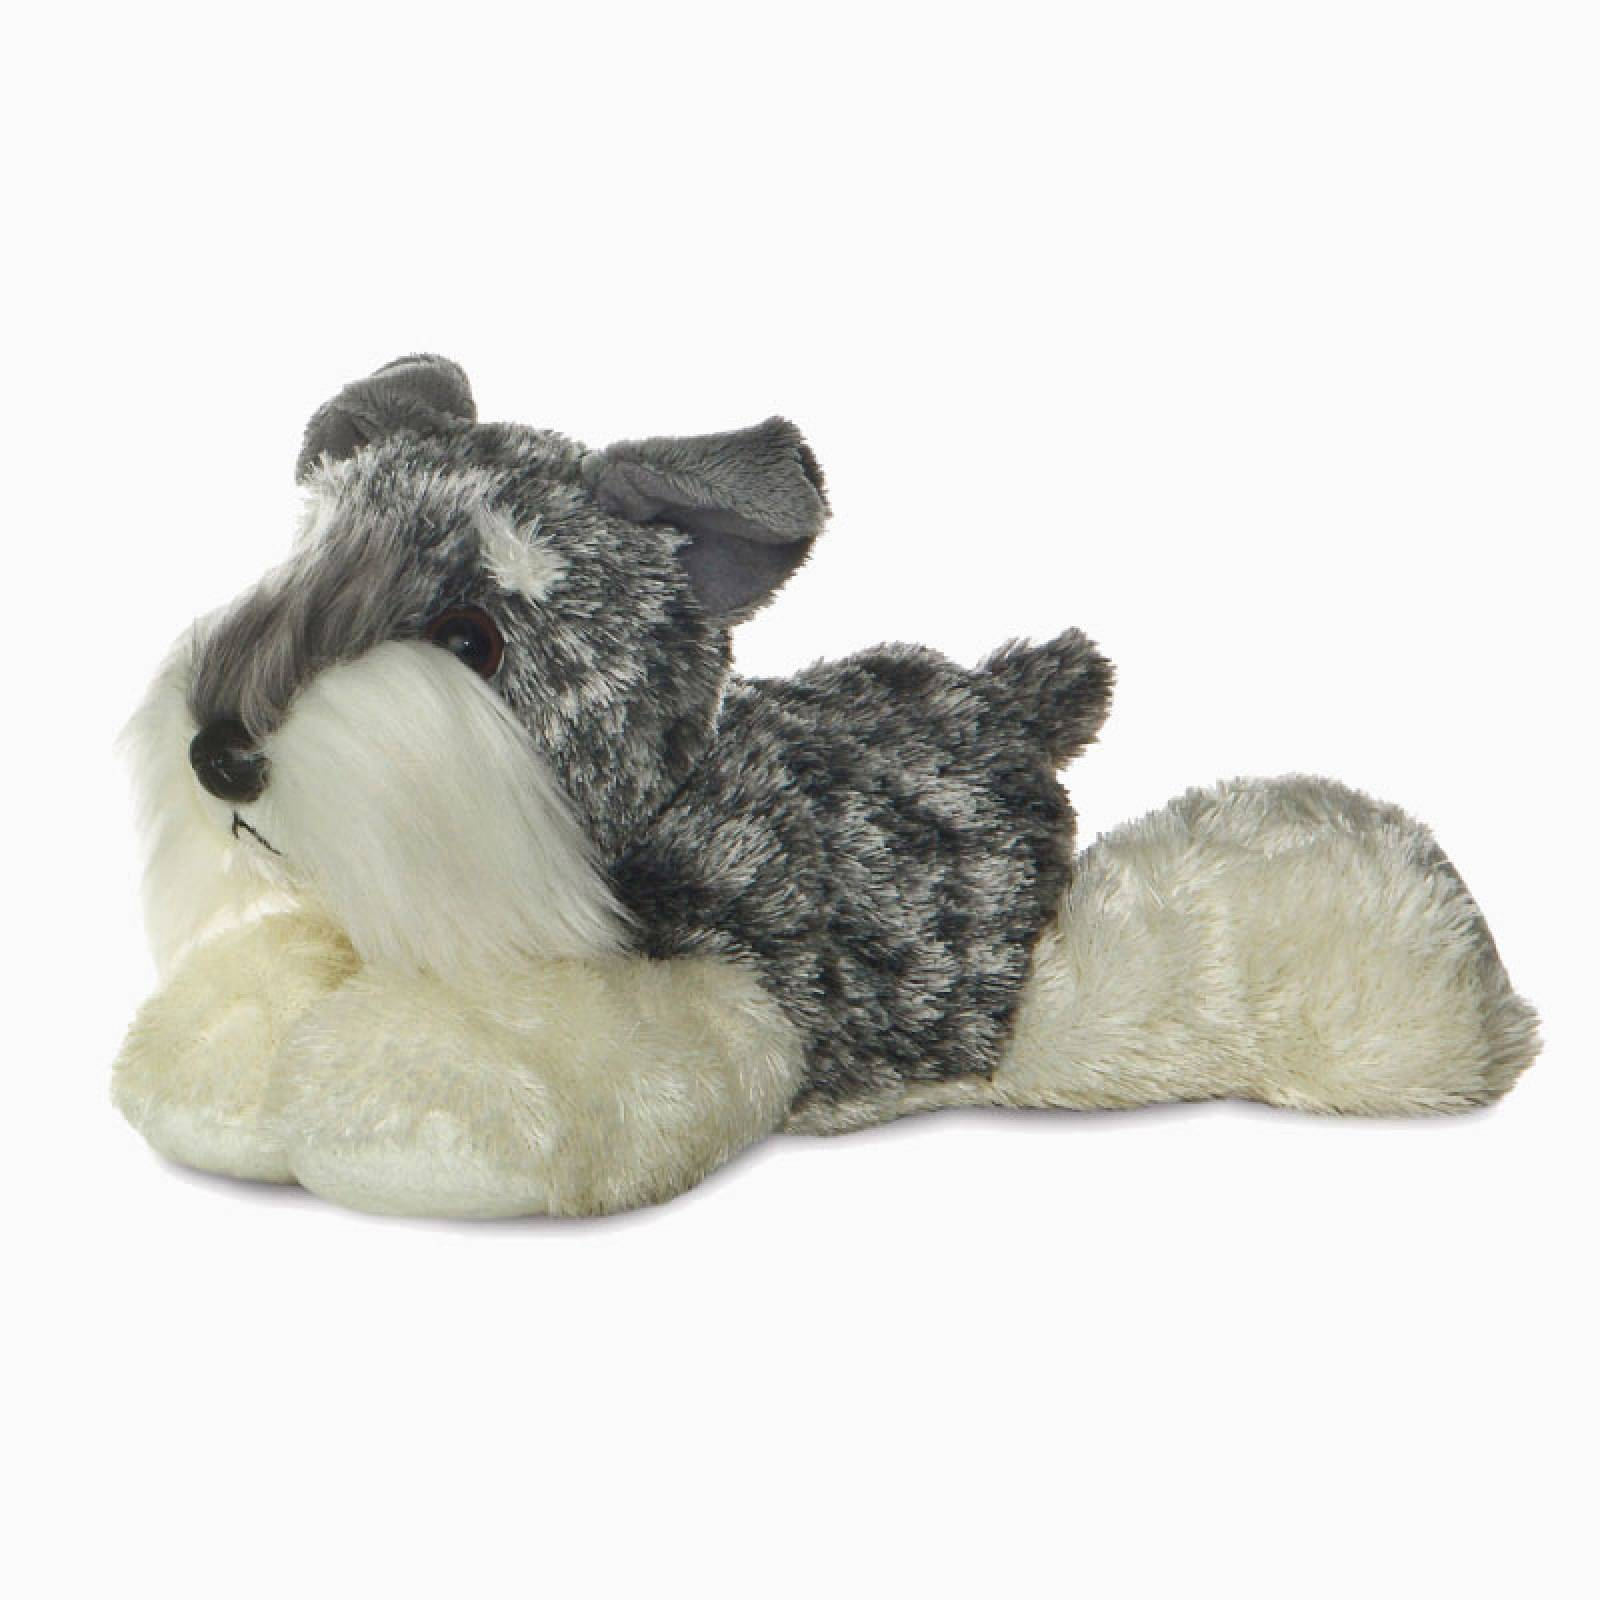 Stein Schnauzer Dog Mini Soft Toy 0+